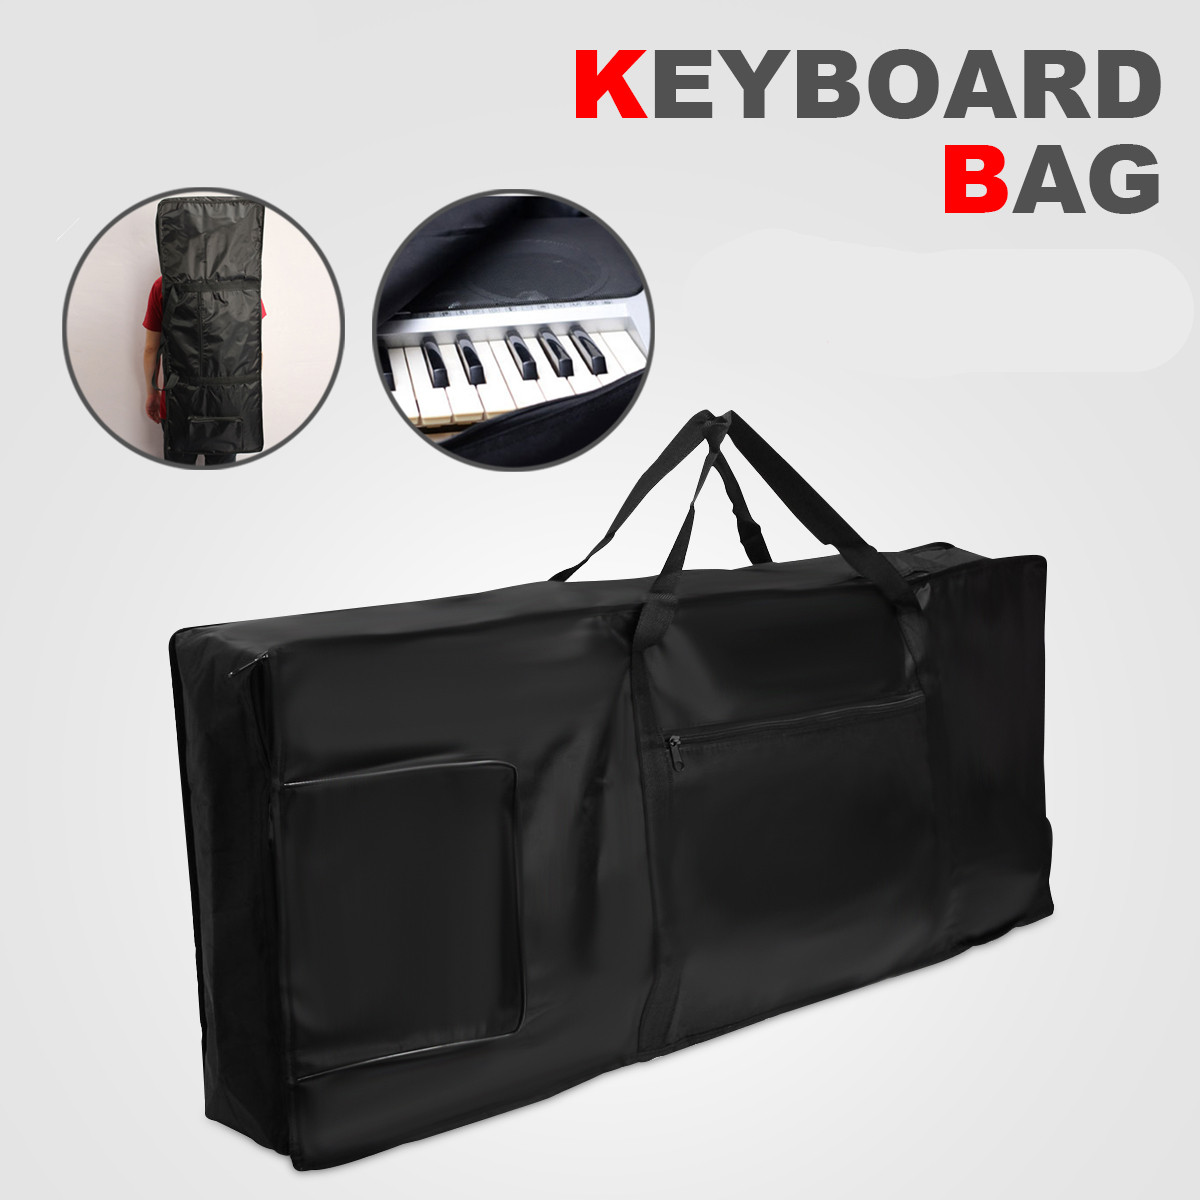 Keyboard Bag Waterproof Portable Thick Padded Electric Piano Keyboard Bag 61 Key Double Shoulder Straps Padded Case Anti Shock